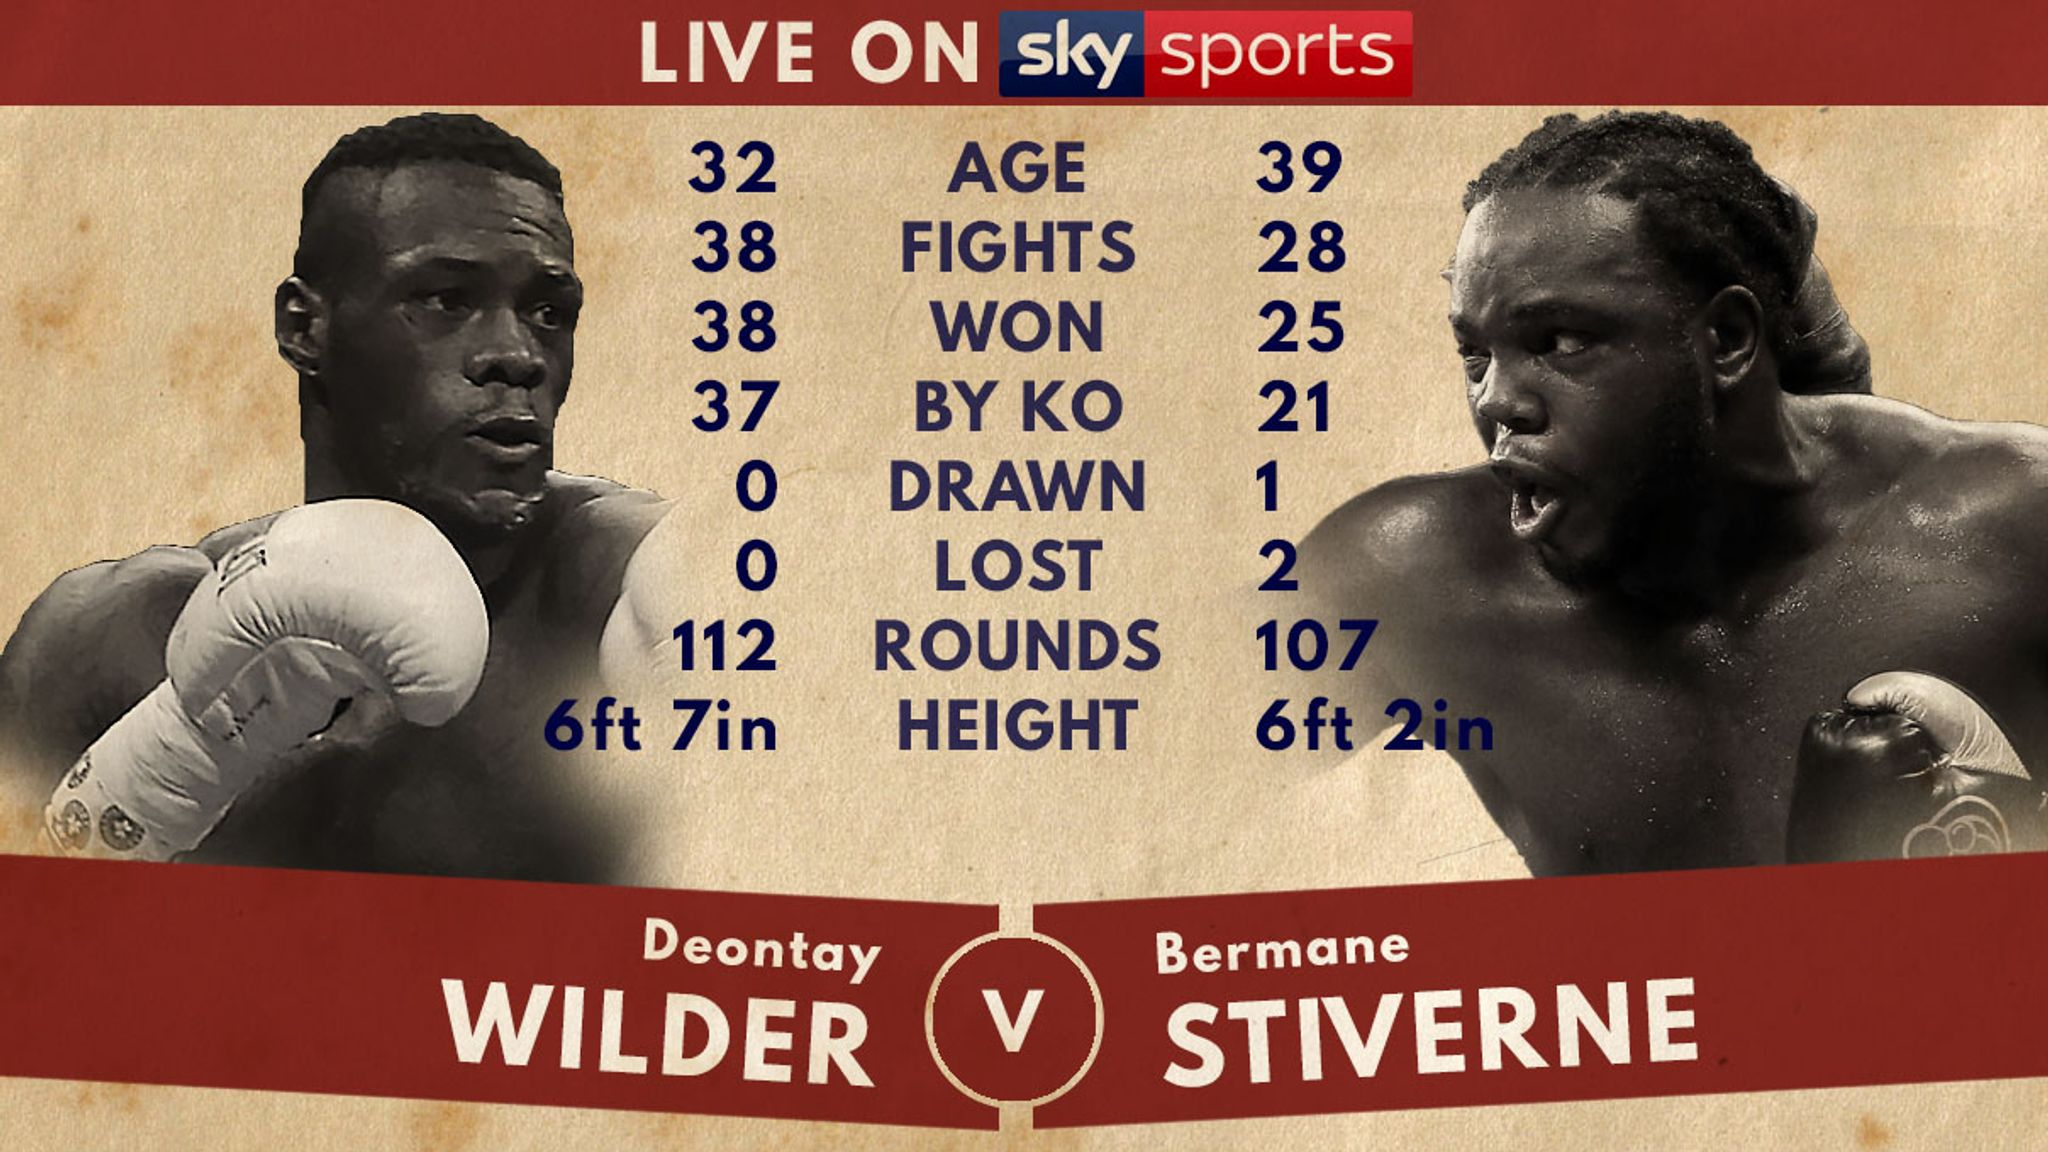 Wilder vs stiverne betting lines best binary options sites